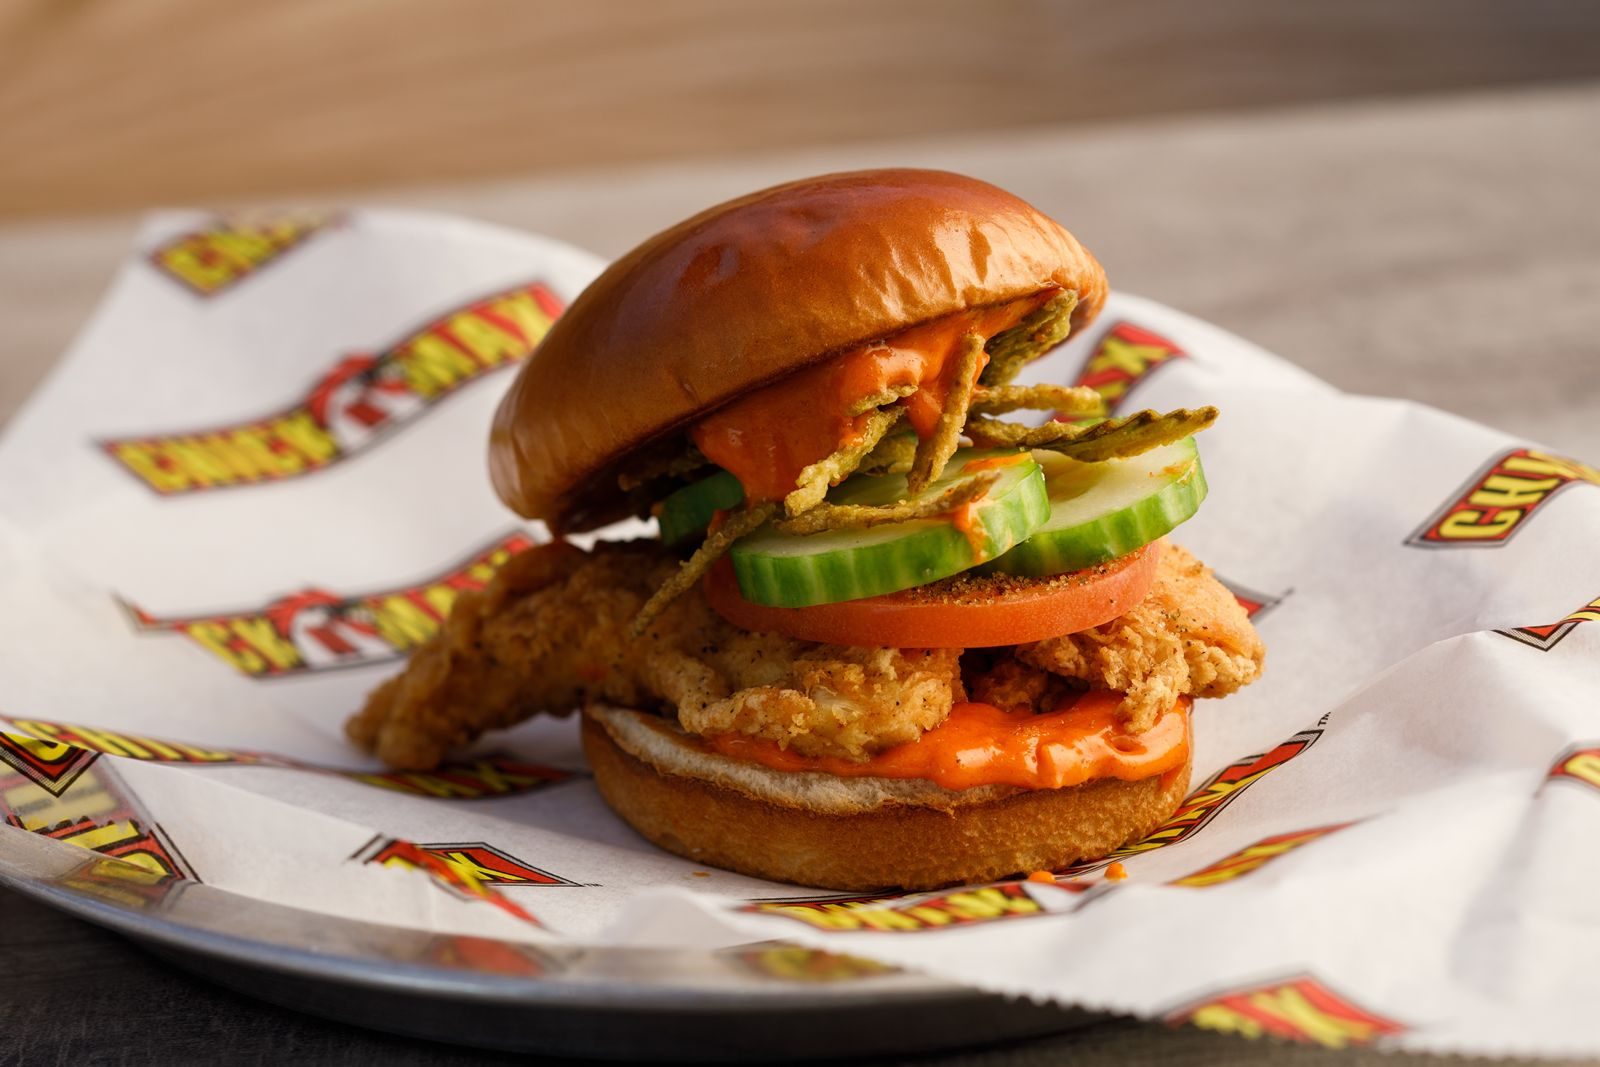 Chick N Max Looks to Spread Its Wings with New Franchise Offering